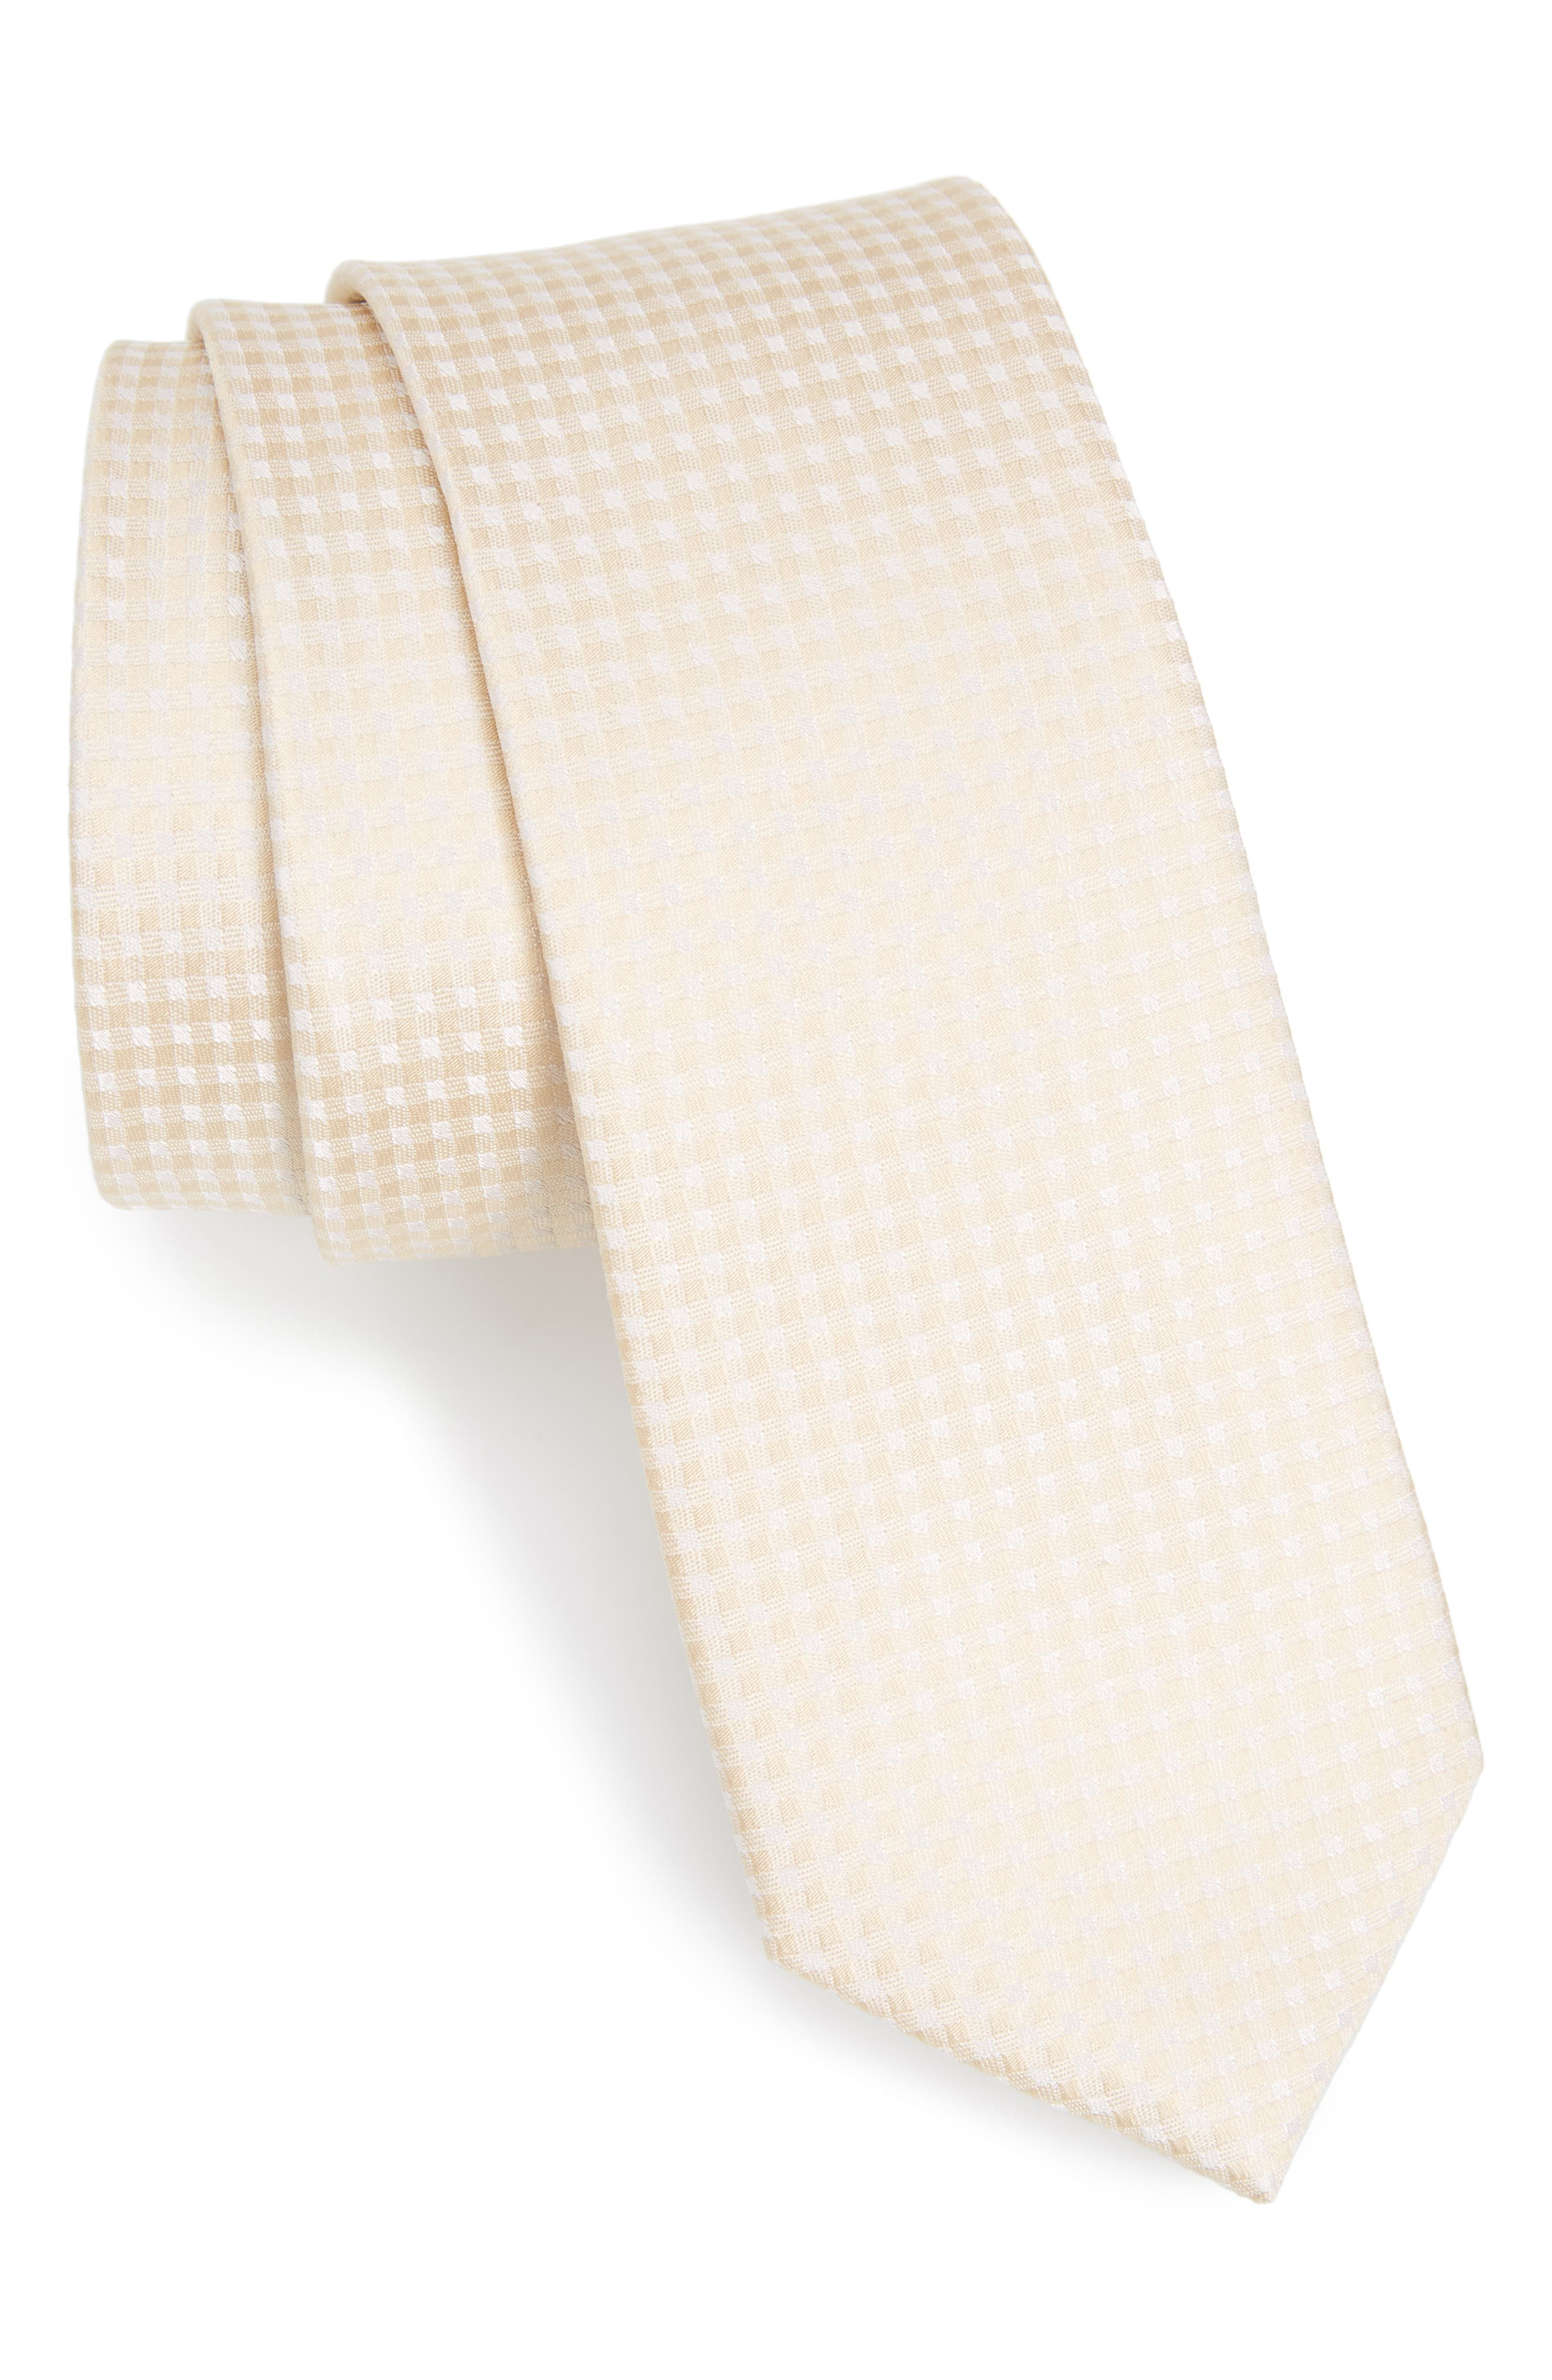 Alternate Image 1 Selected - The Tie Bar Check Silk Tie